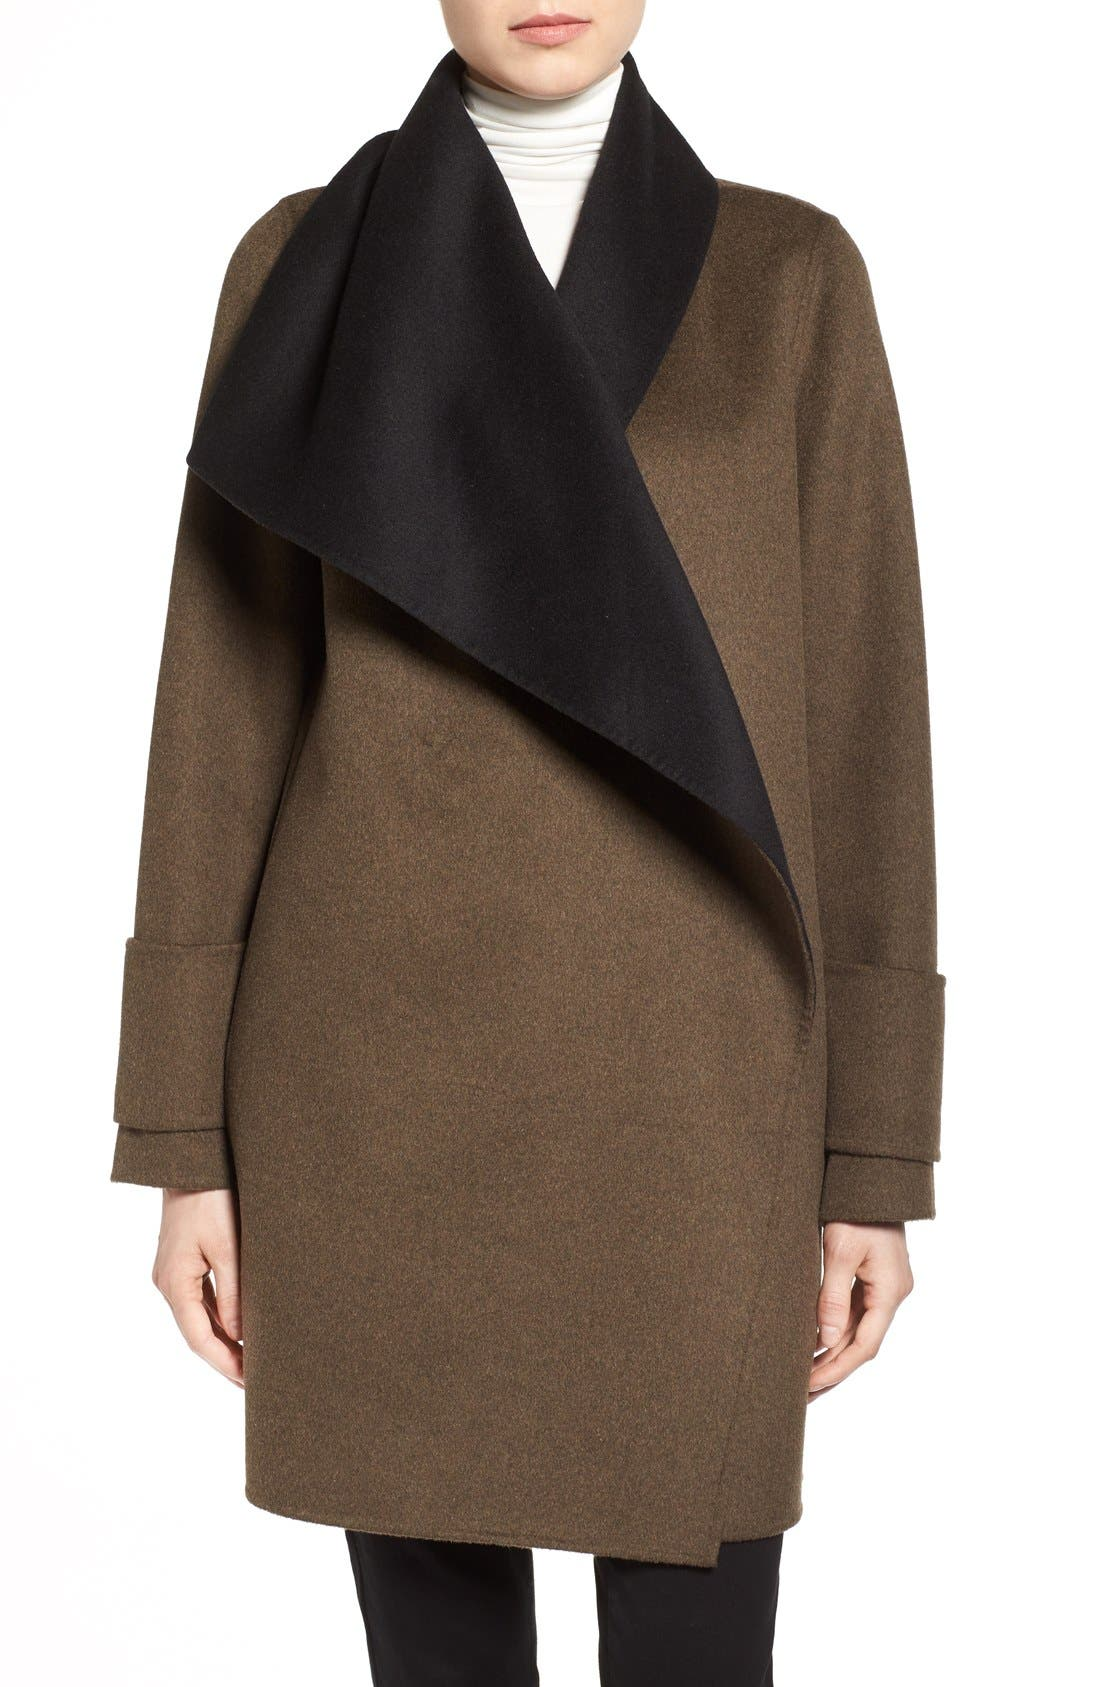 Alternate Image 1 Selected - Calvin Klein Double Face Drape Front Coat